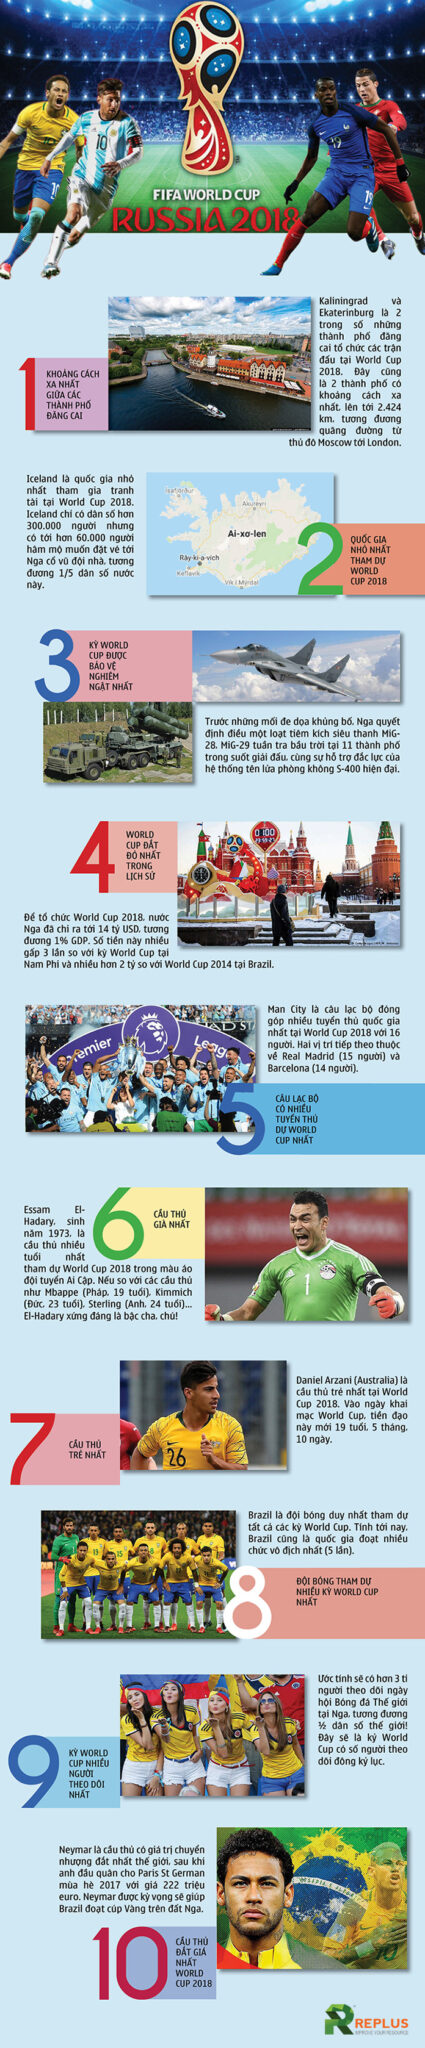 infographic nhung cai nhat worldcup 2018